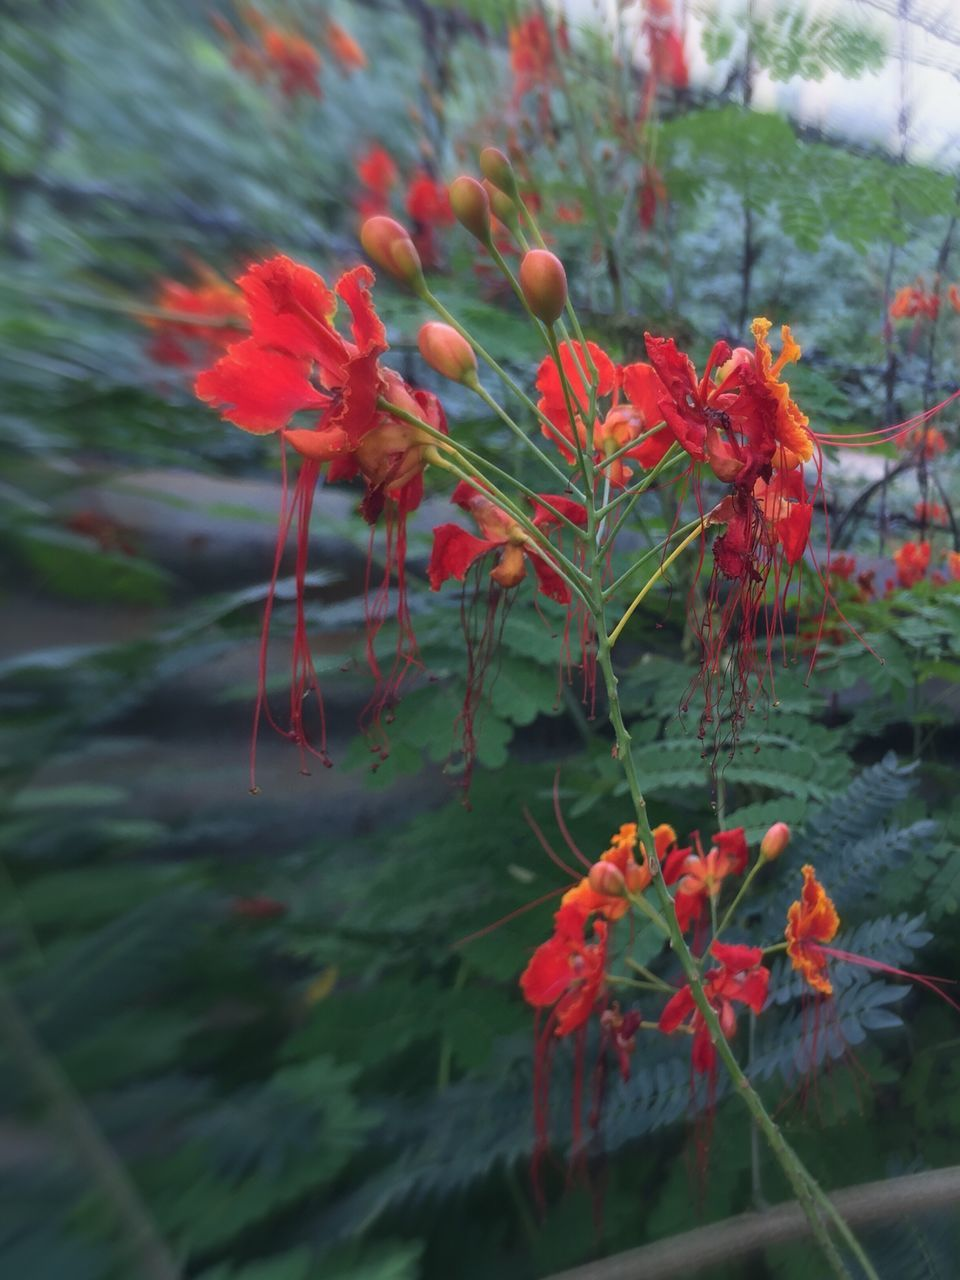 flower, growth, plant, nature, red, no people, fragility, petal, beauty in nature, freshness, outdoors, day, blooming, close-up, flower head